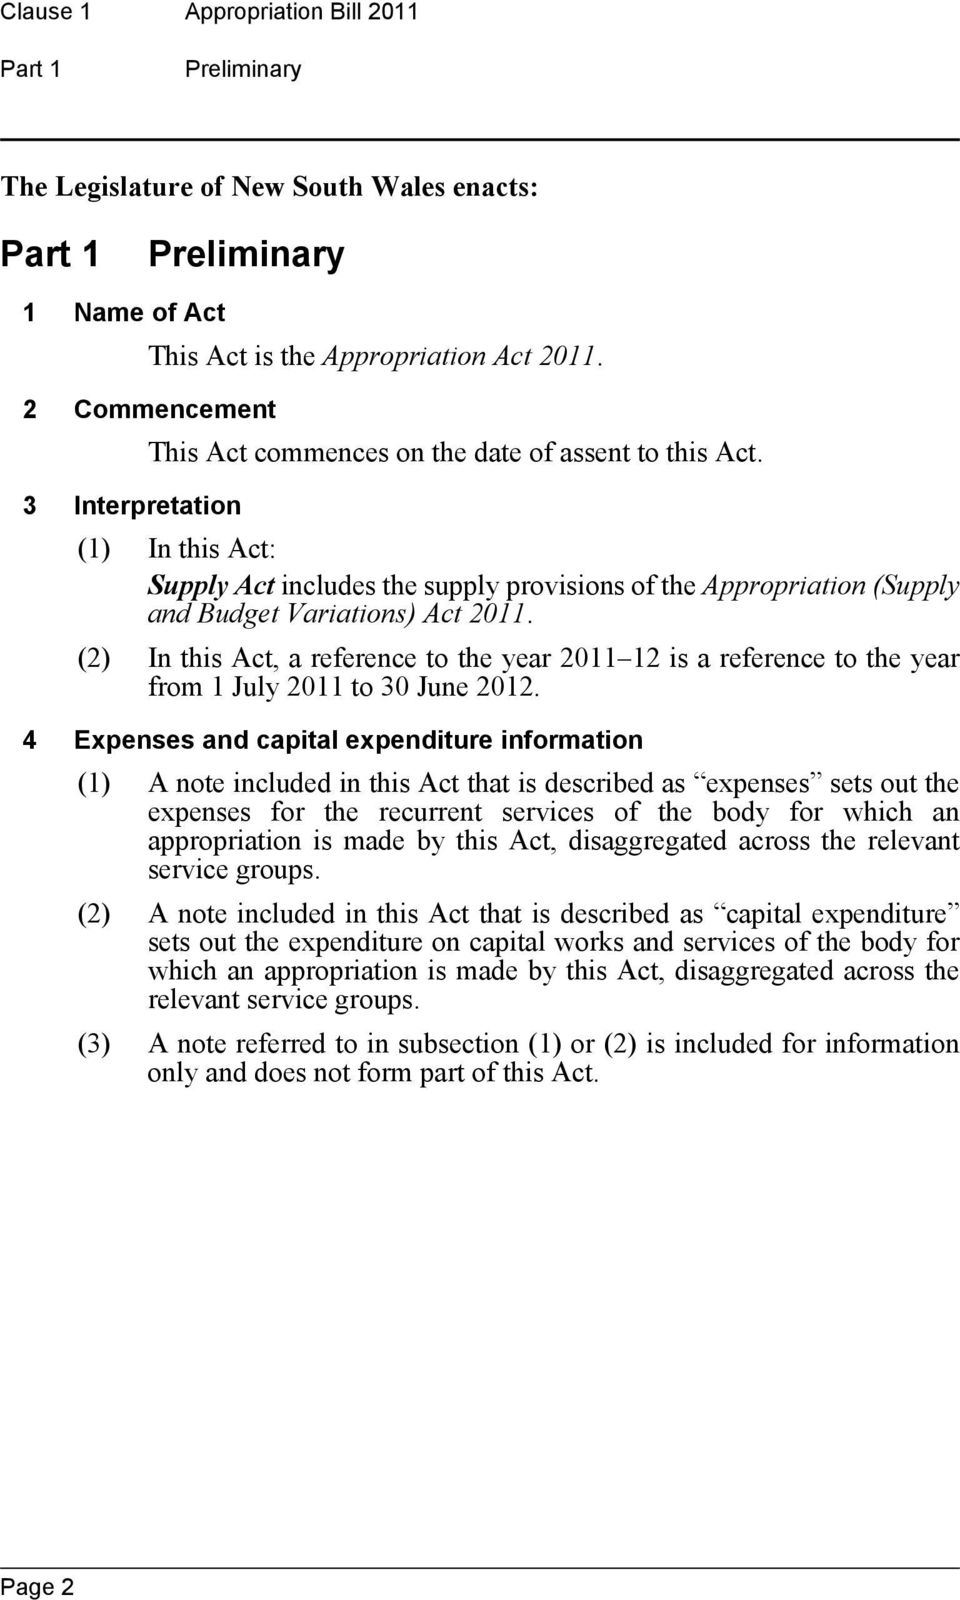 (1) In this Act: Supply Act includes the supply provisions of the Appropriation (Supply and Budget Variations) Act 2011.